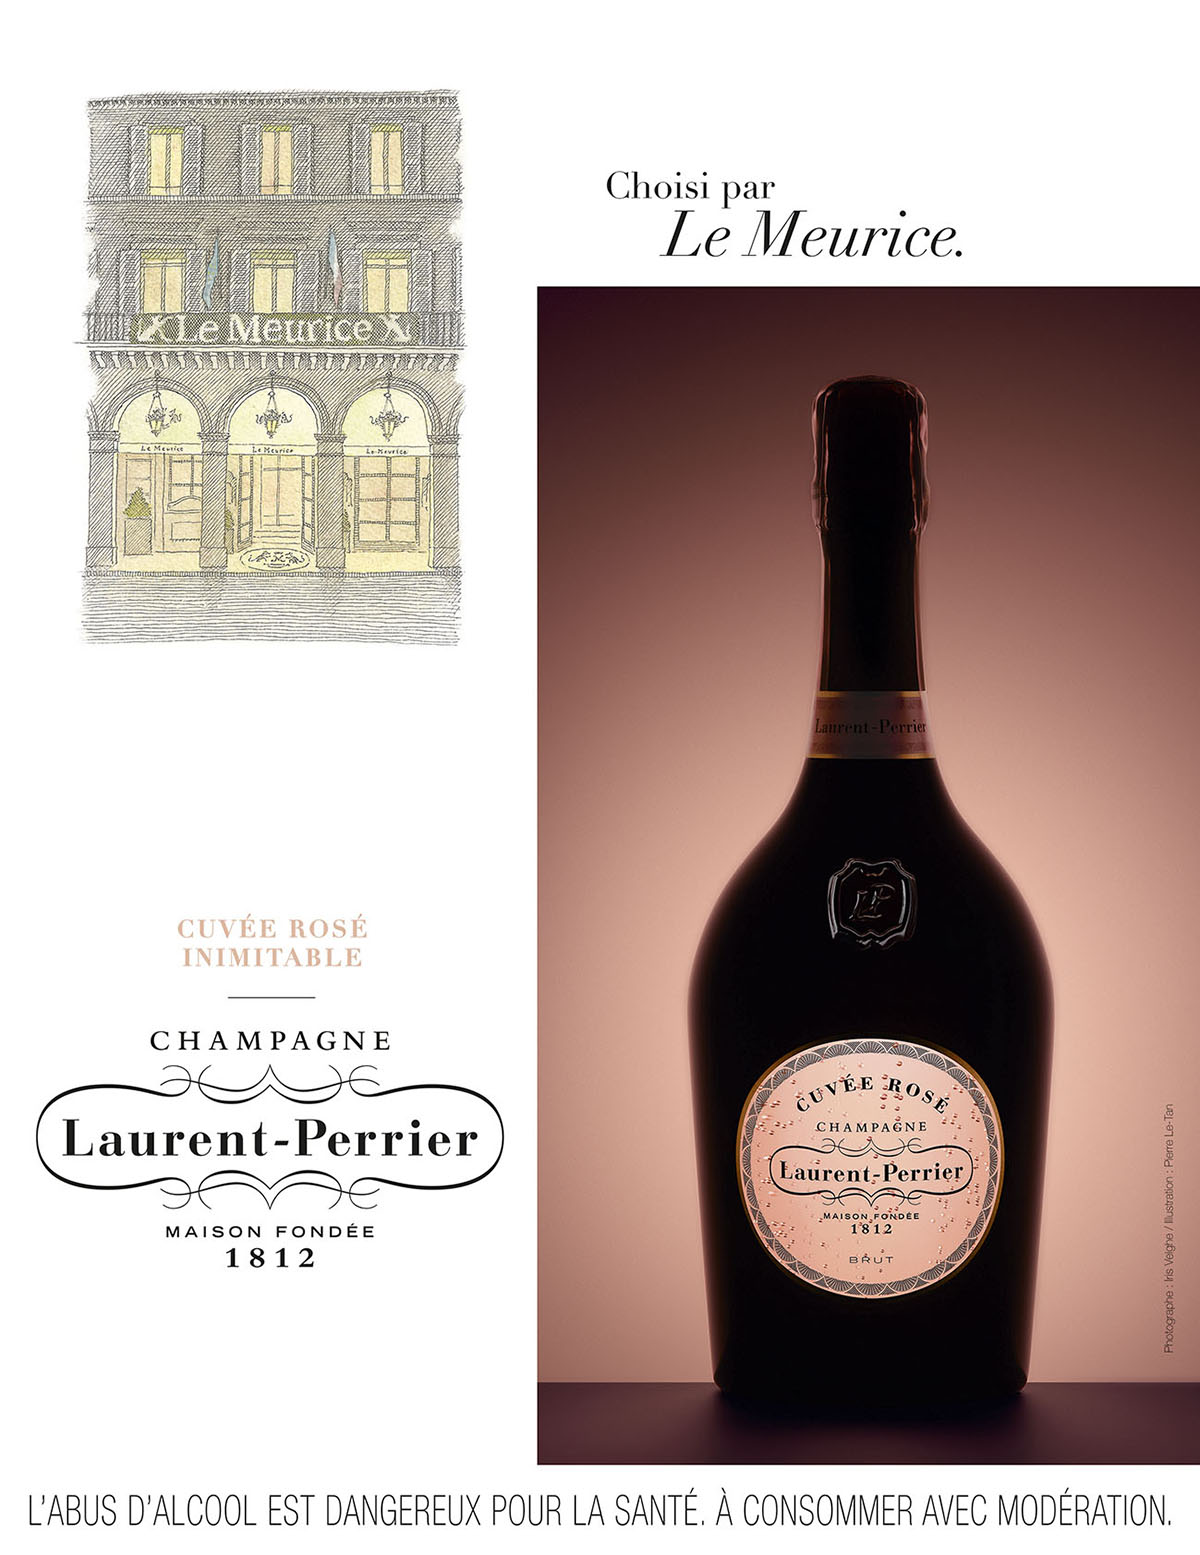 laurent-perrier-champagne-publicite-marketing-ads-cuvee-rose-tour-argent-meurice-gstaad-palace-ritz-dorchester-gavroche-agence-publicis-conseil-2